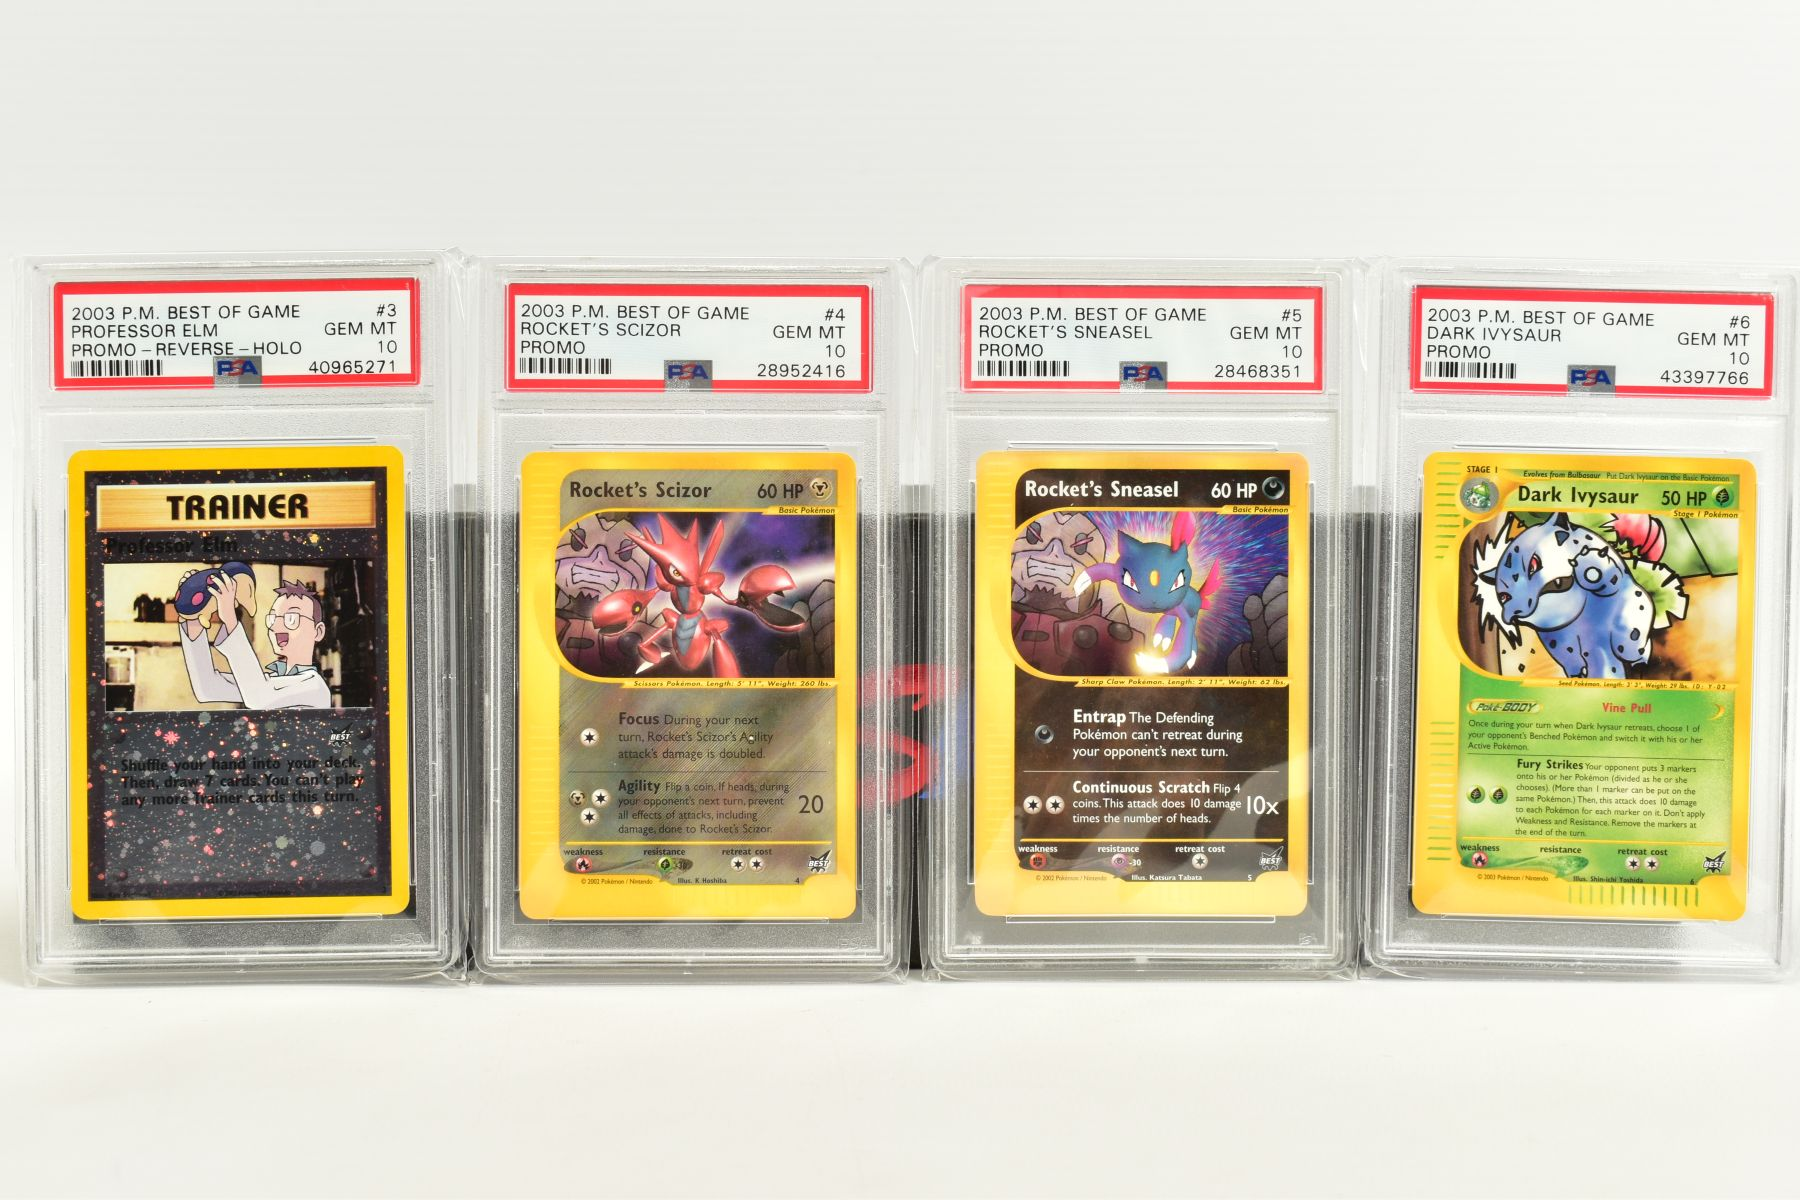 A QUANTITY OF PSA GRADED POKEMON BEST OF GAME CARDS, all are graded GEM MINT 10 and are sealed in - Image 2 of 4